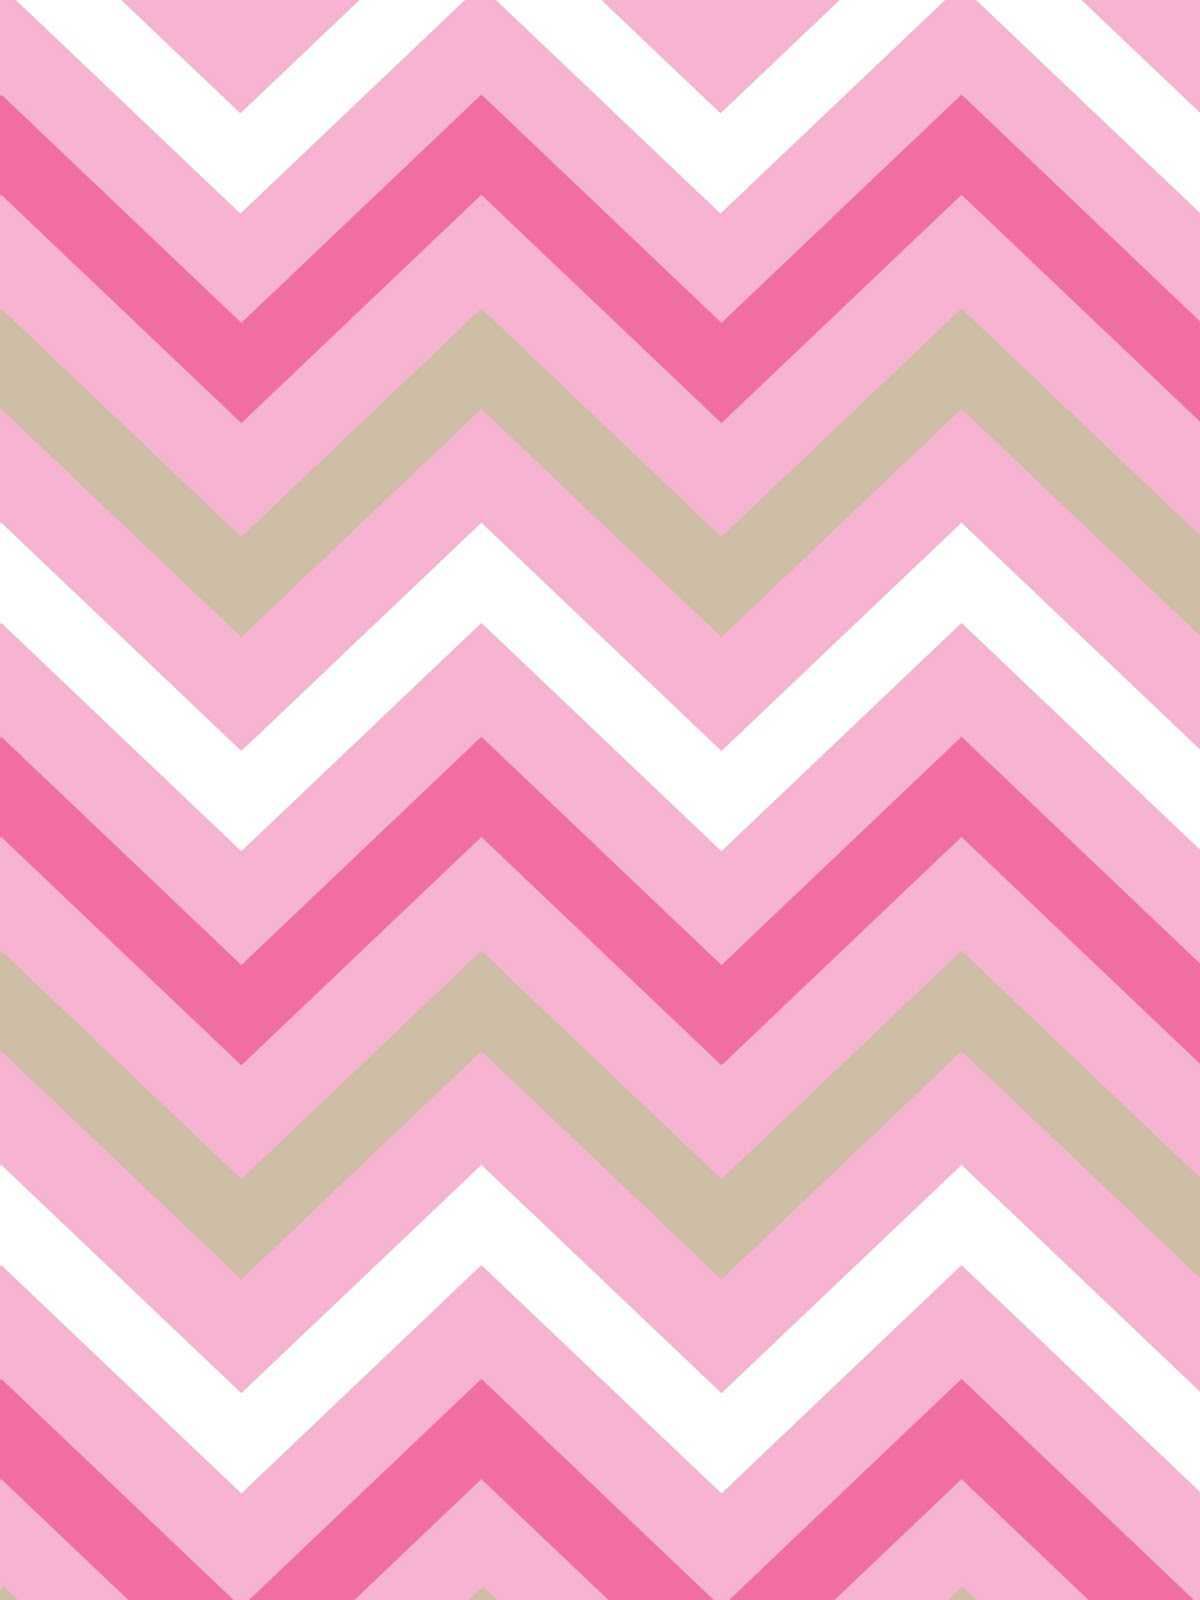 chevron style wallpaper - photo #24